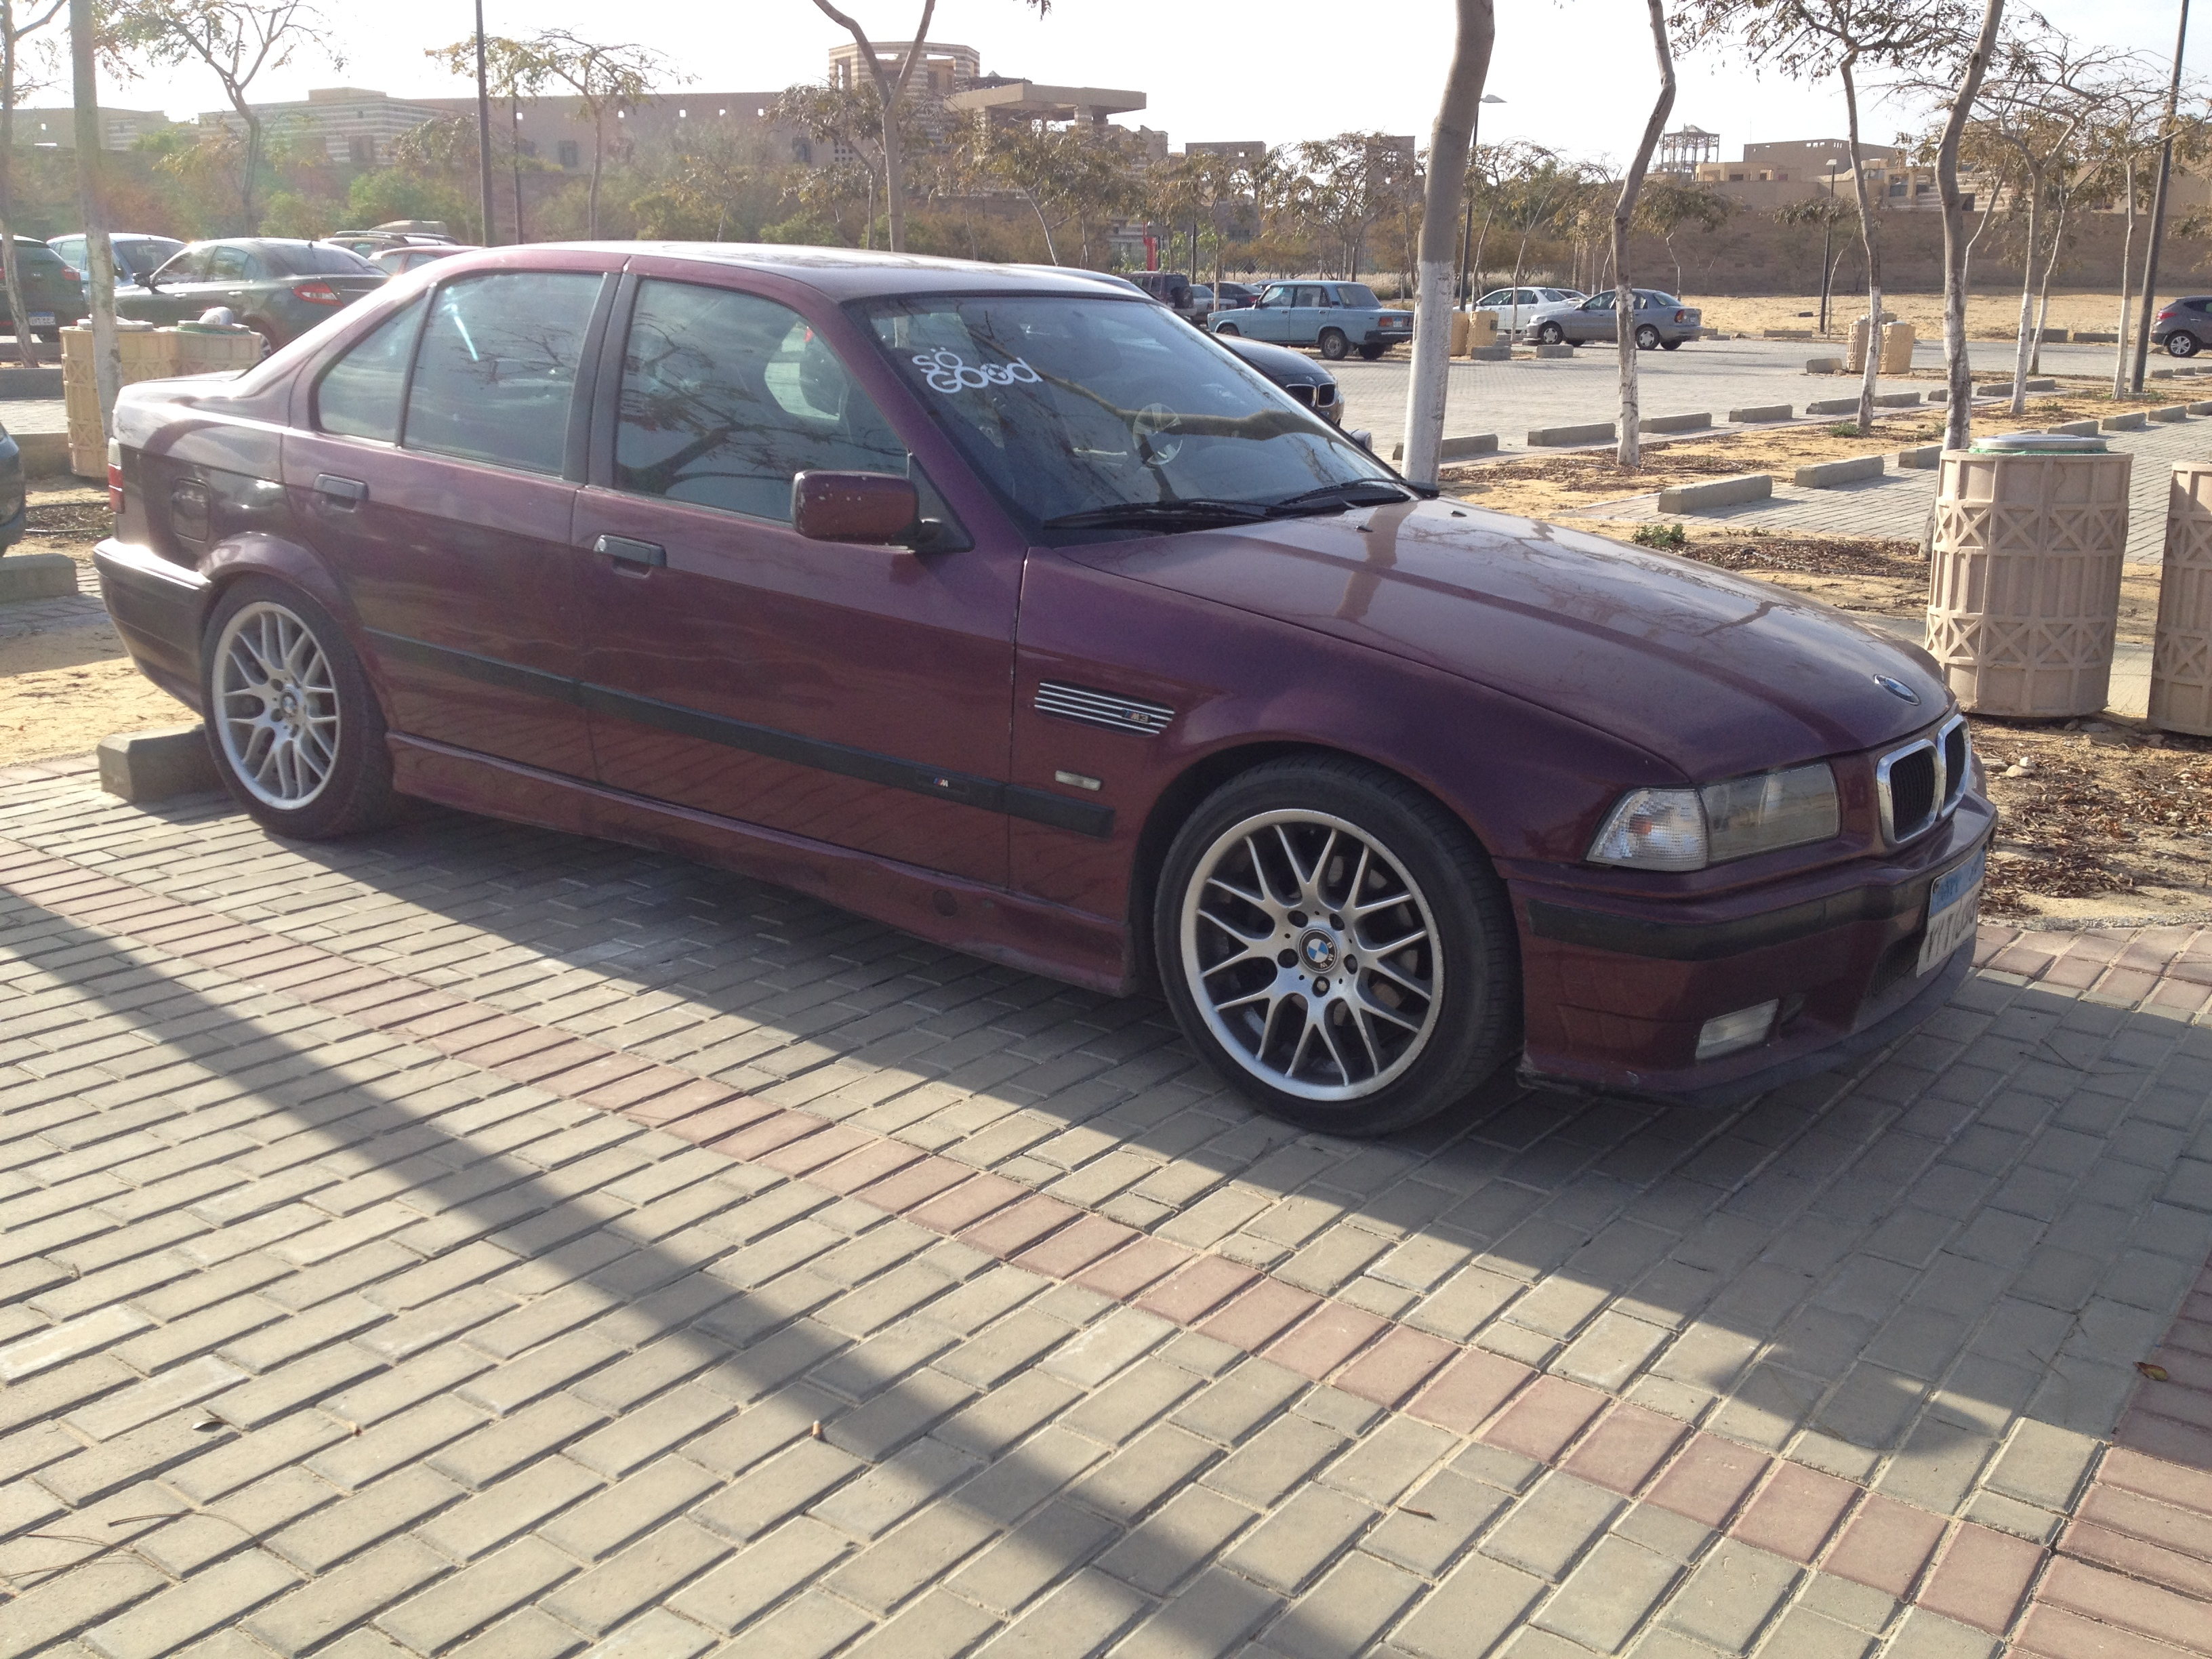 zorex's 1996 BMW 3-Series